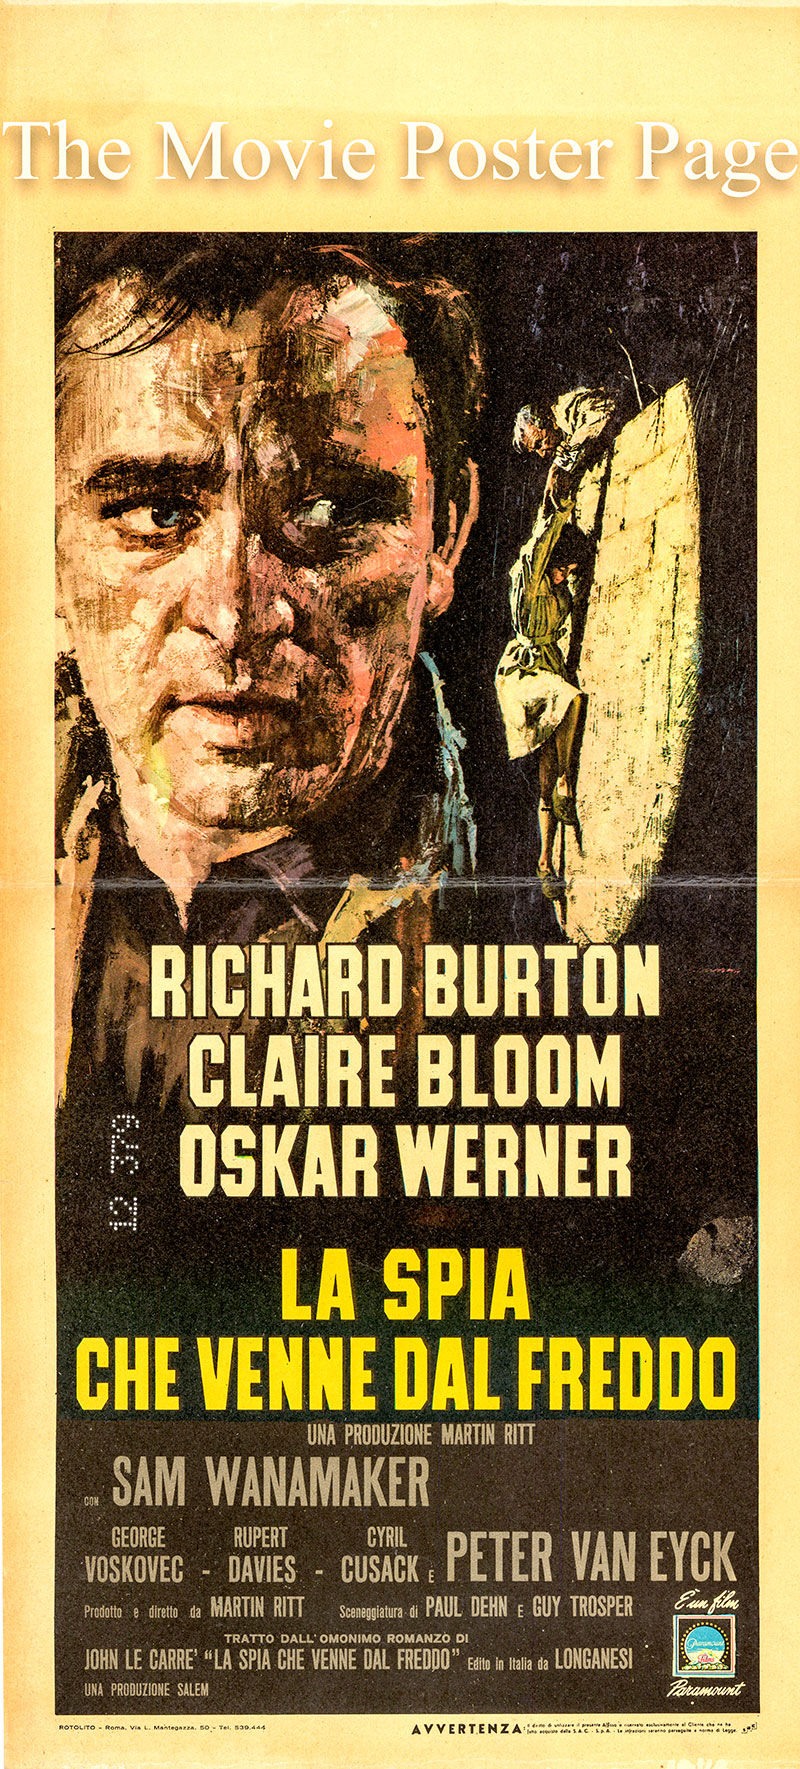 Pictured is an Italian locandina poster for the 1966 Martin Ritt film The Spy Who Came in from the Cold based on the 1963 novel of the same title by John le Carre, screenplay by Paul Dehn and Guy Trosper  and starring Richard Burton as Alec Leamas.